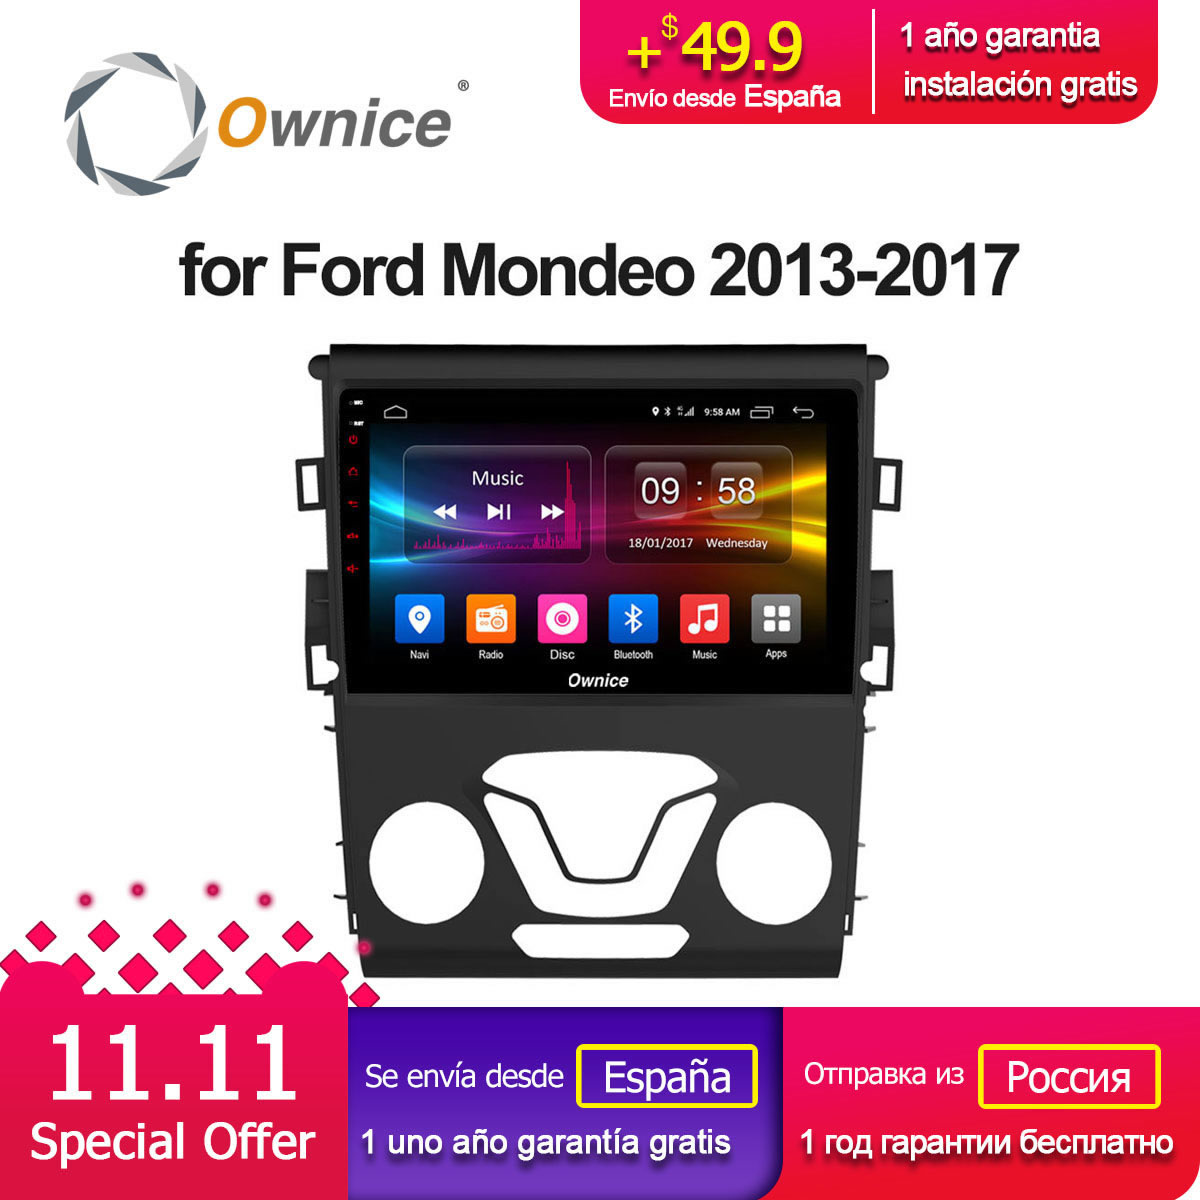 Ownice C500+ G10 Octa core Android 8.1 2GB + 32G CAR GPS DVD player FOR FORD MONDEO 2013 - 2017 car audio stereo Multimedia GPS ownice c500 4g sim lte octa 8 core android 6 0 for kia ceed 2013 2015 car dvd player gps navi radio wifi 4g bt 2gb ram 32g rom